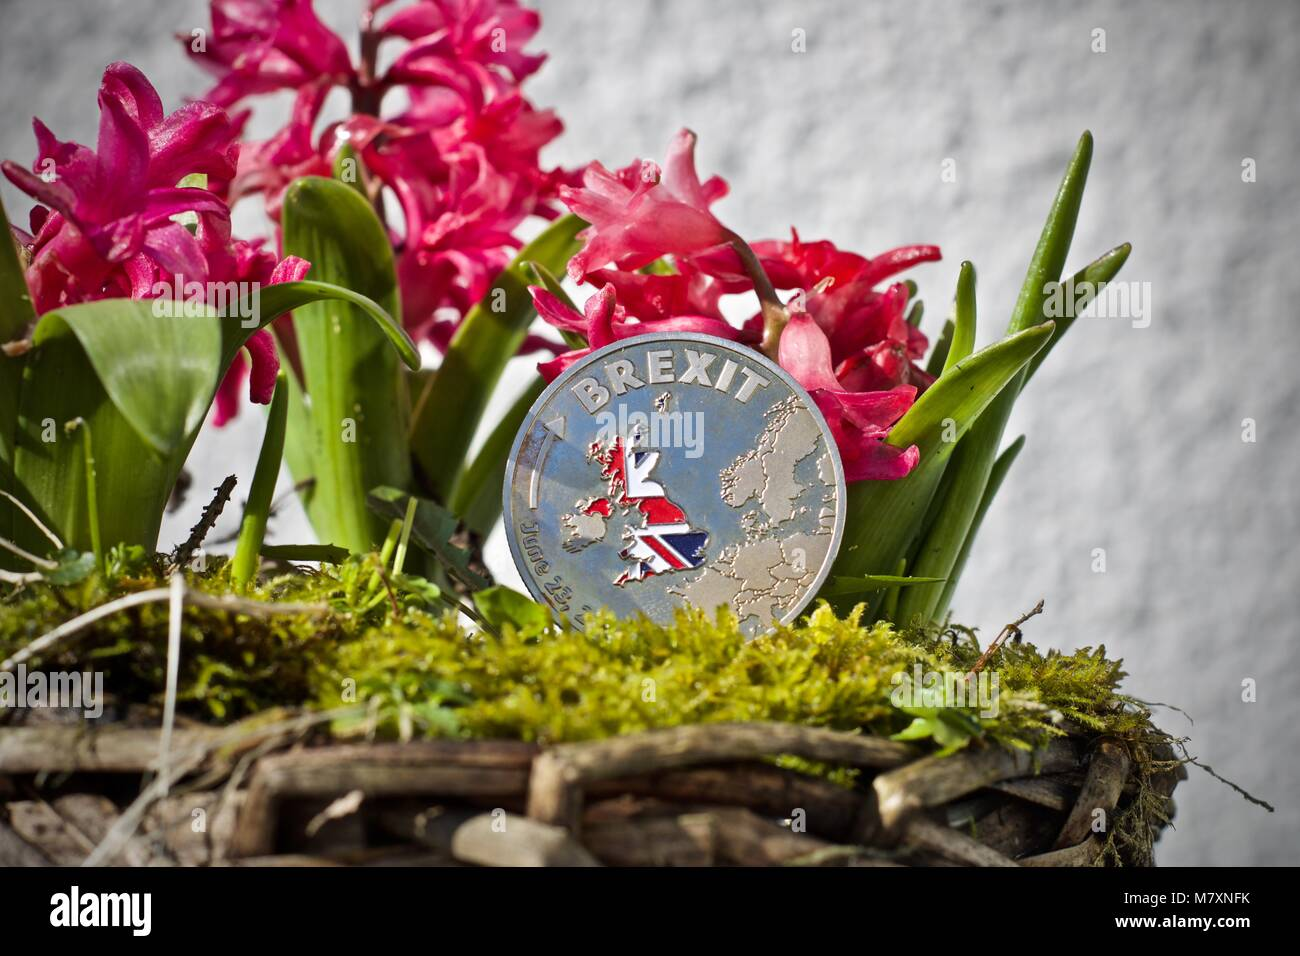 Physical metal brexit coin with a british flag on the front. Stock Photo